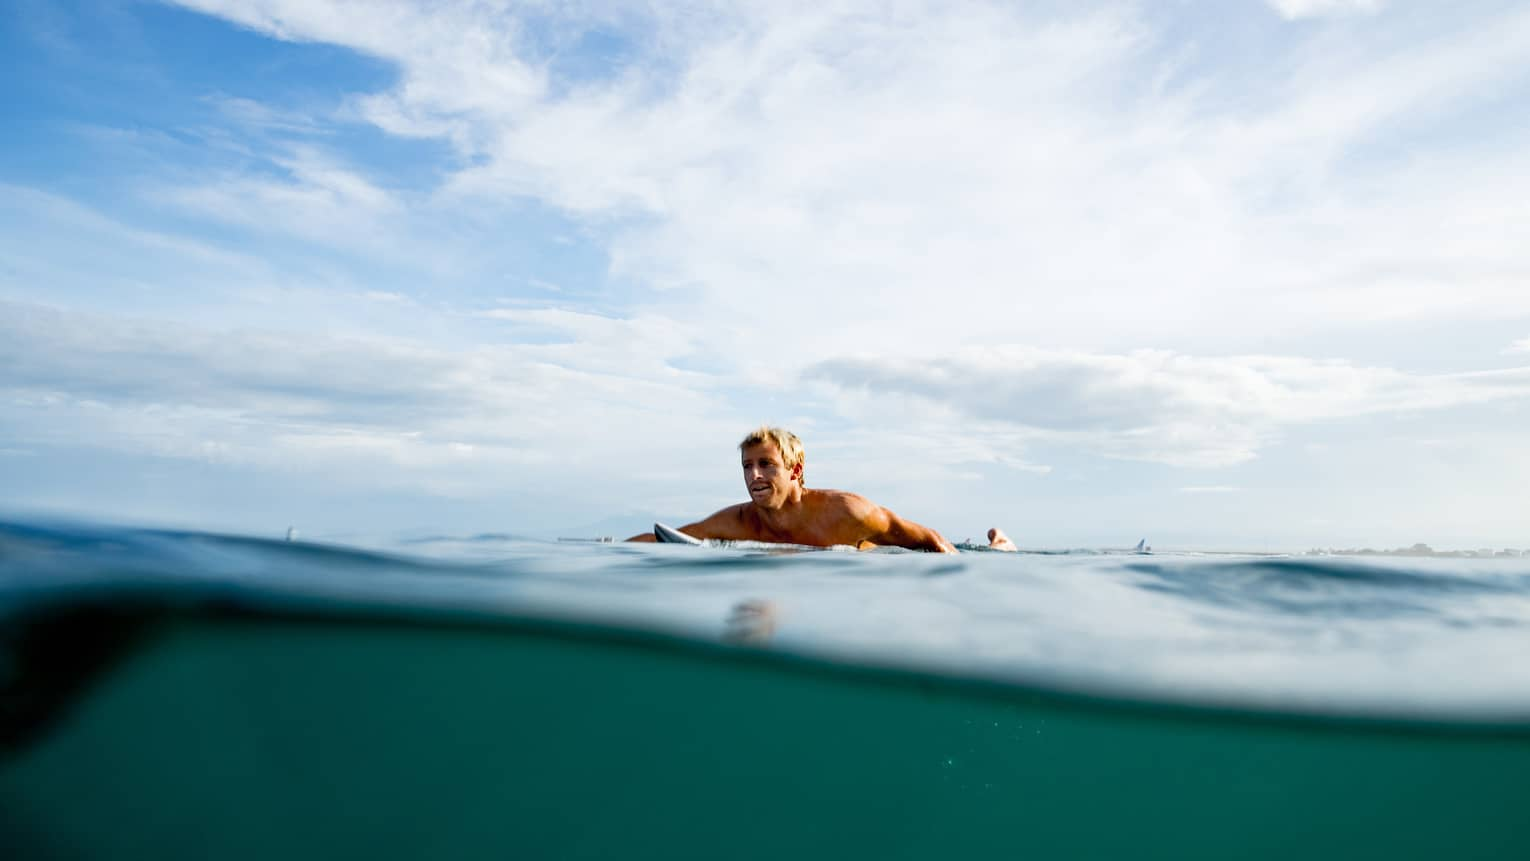 A guest swims out to surf on the water in Bali